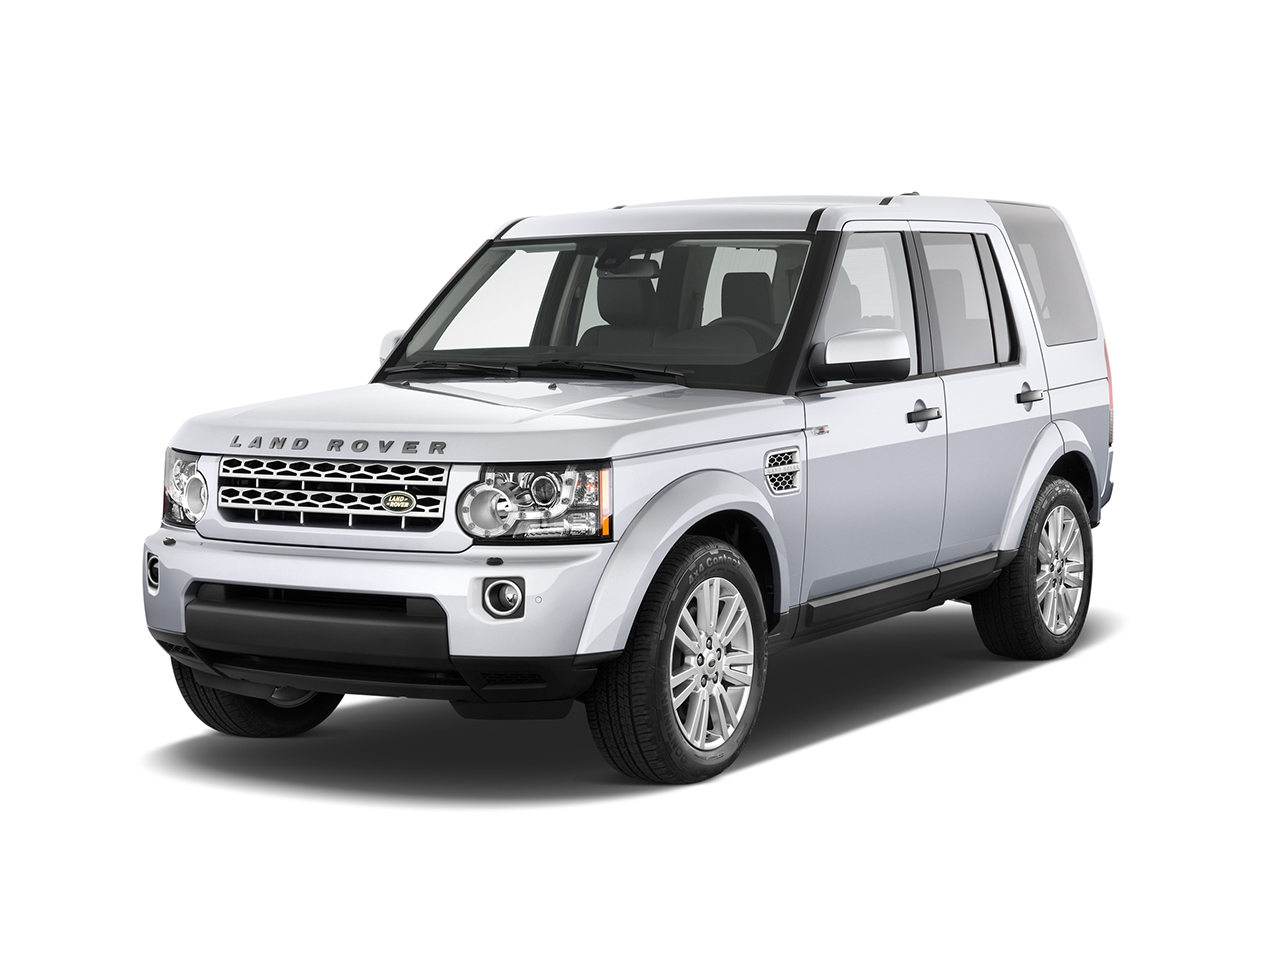 2018 Land Rover Lr4 Prices In Qatar Gulf Specs Amp Reviews